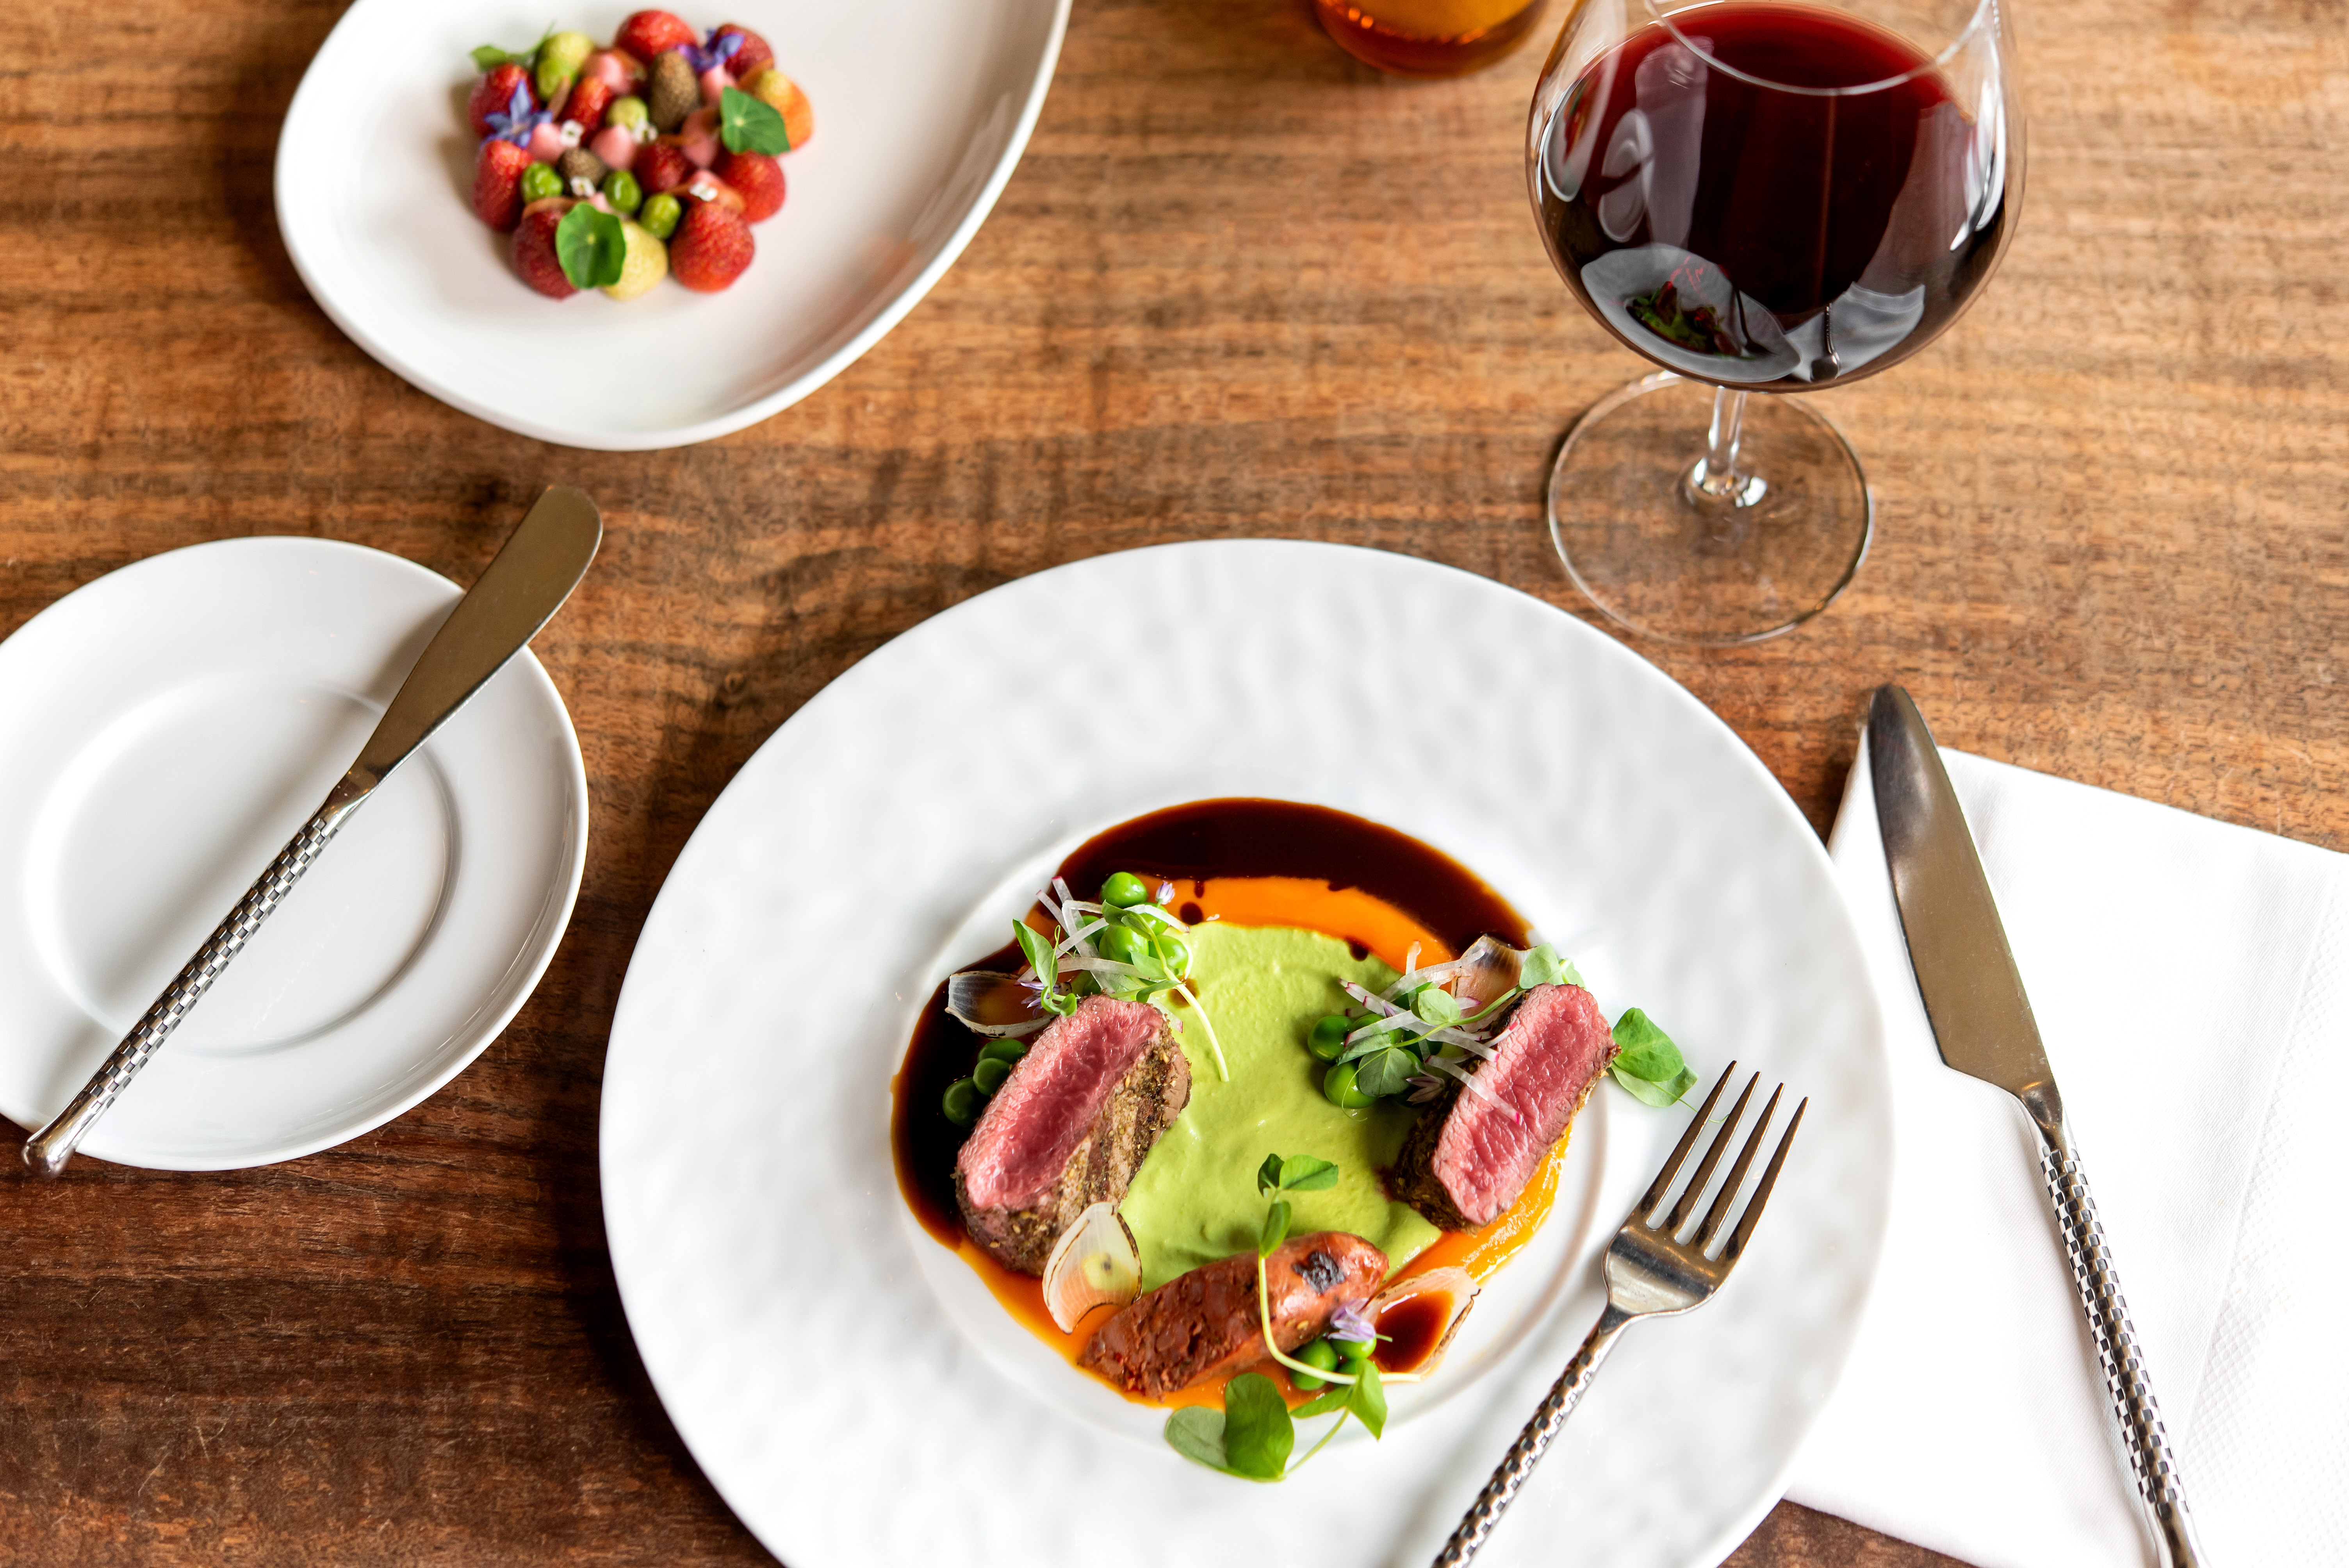 A rare steak, a small vegetable salad, and a glass of pinot noir sit on a table at Jory, the restaurant within the Allison Inn & Spa